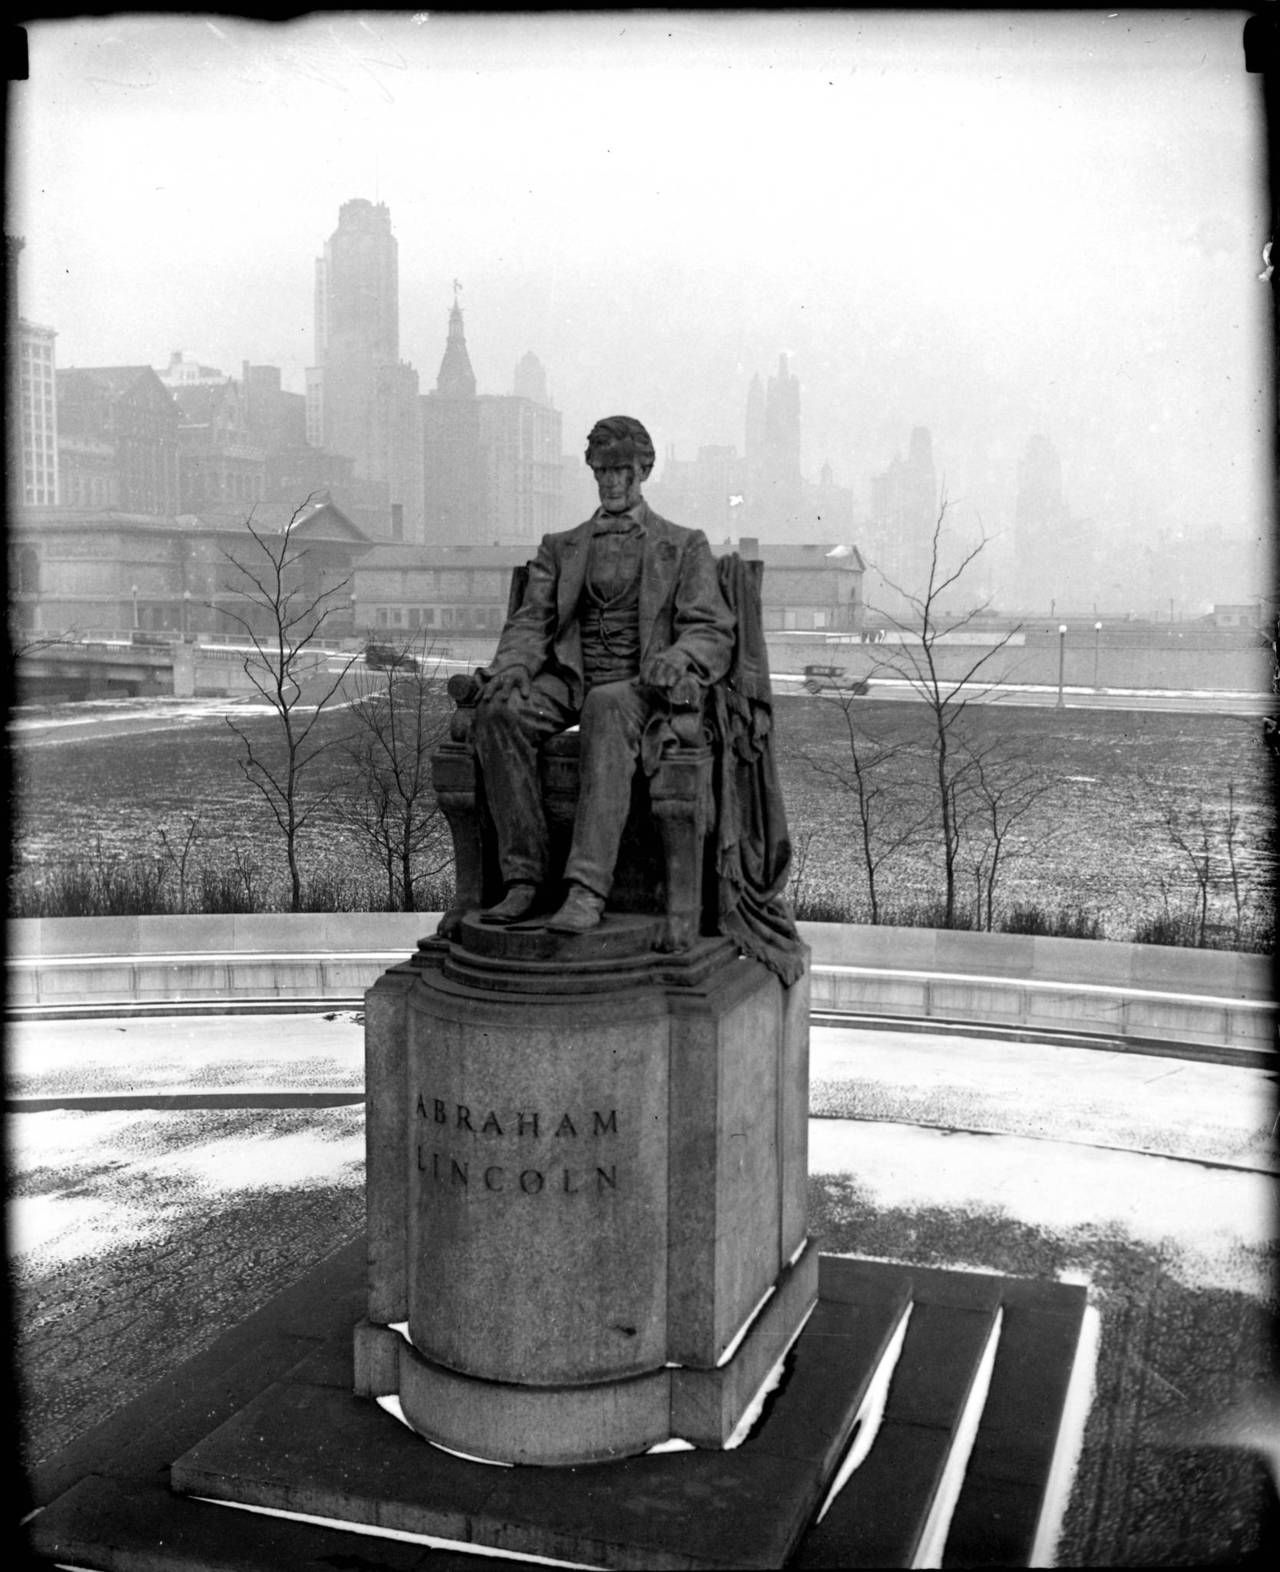 'The Seated Lincoln' monument during winter at Grant Park